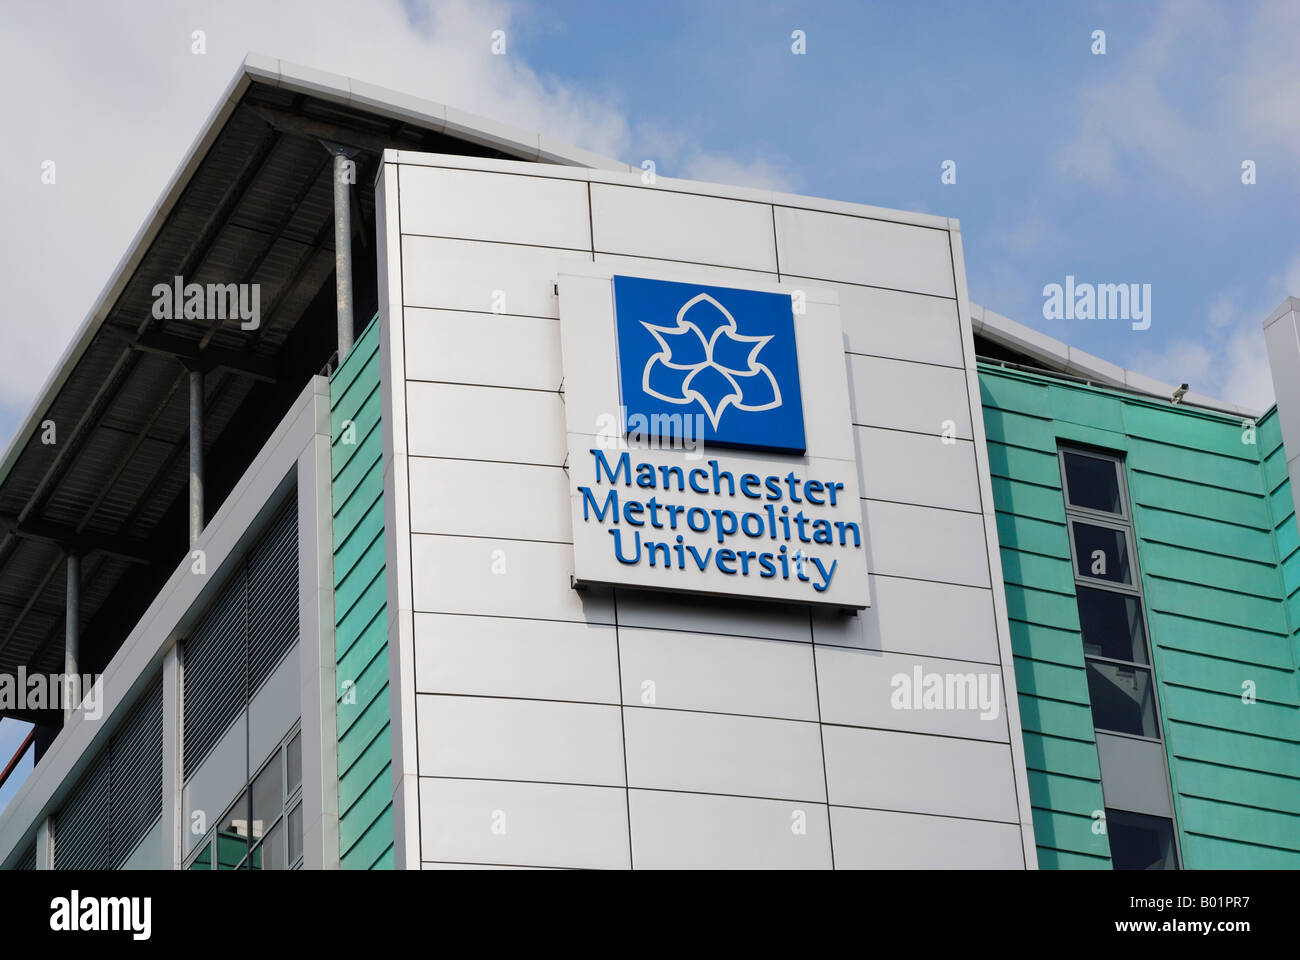 Manchester Metropolitan University building situated next to the mancunian Way - Stock Image